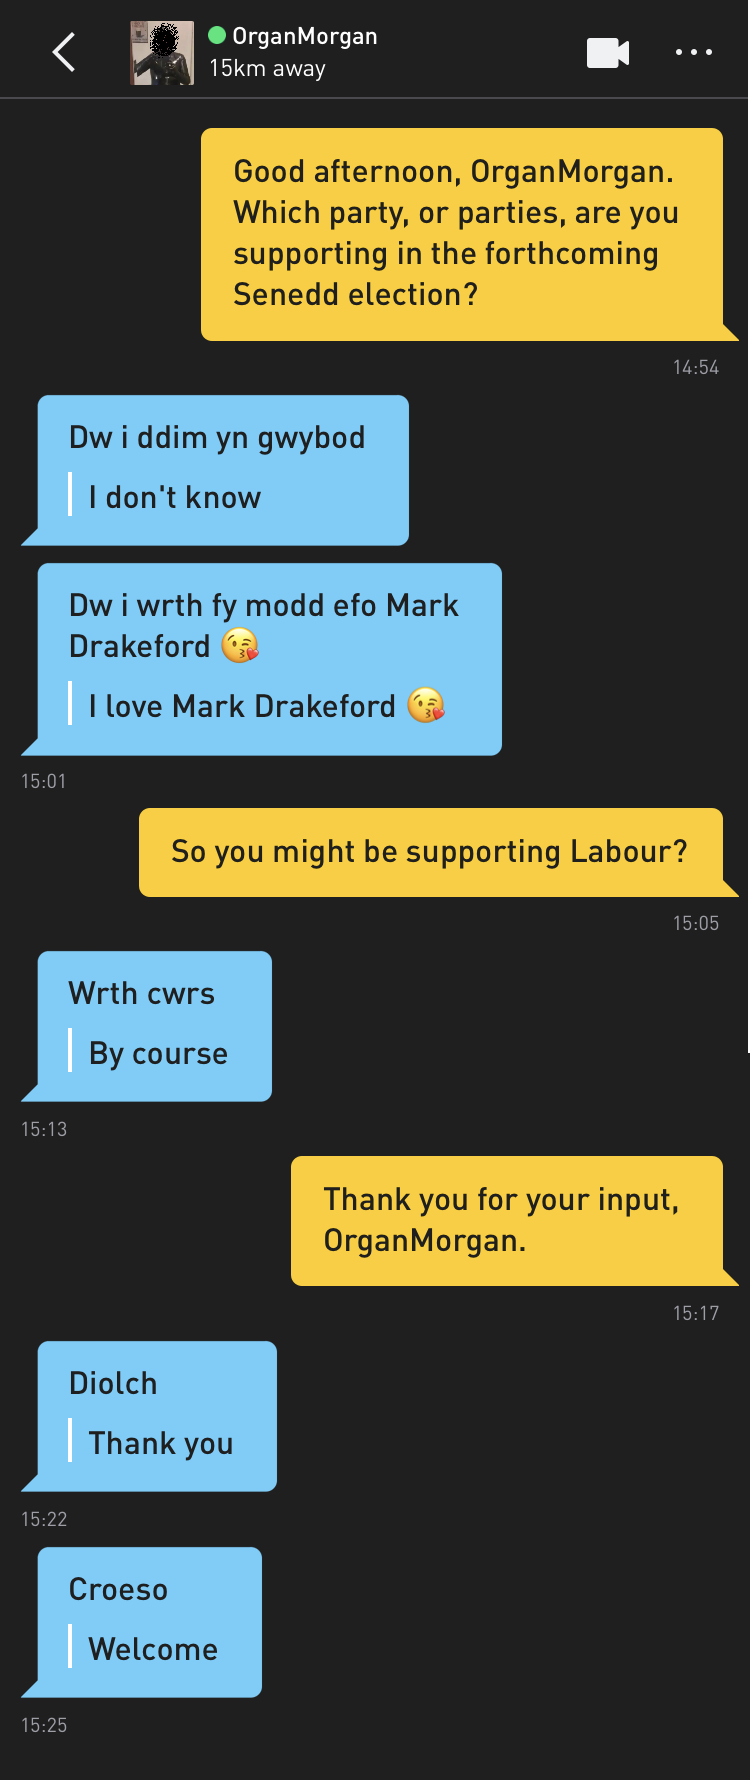 Me: Good afternoon, OrganMorgan. Which party, or parties, are you supporting in the forthcoming Senedd election? OrganMorgan: Dw i ddim yn gwybod [translation: I don't know] OrganMorgan: Dw i wrth fy modd efo Mark Drakeford 😘 [translation: I love Mark Drakeford 😘] Me: So you might be supporting Labour? OrganMorgan: Wrth cwrs [translation: By course] Me: Thank you for your input, OrganMorgan. OrganMorgan: Diolch [translation: Thank you] OrganMorgan: Croeso [translation: Welcome]